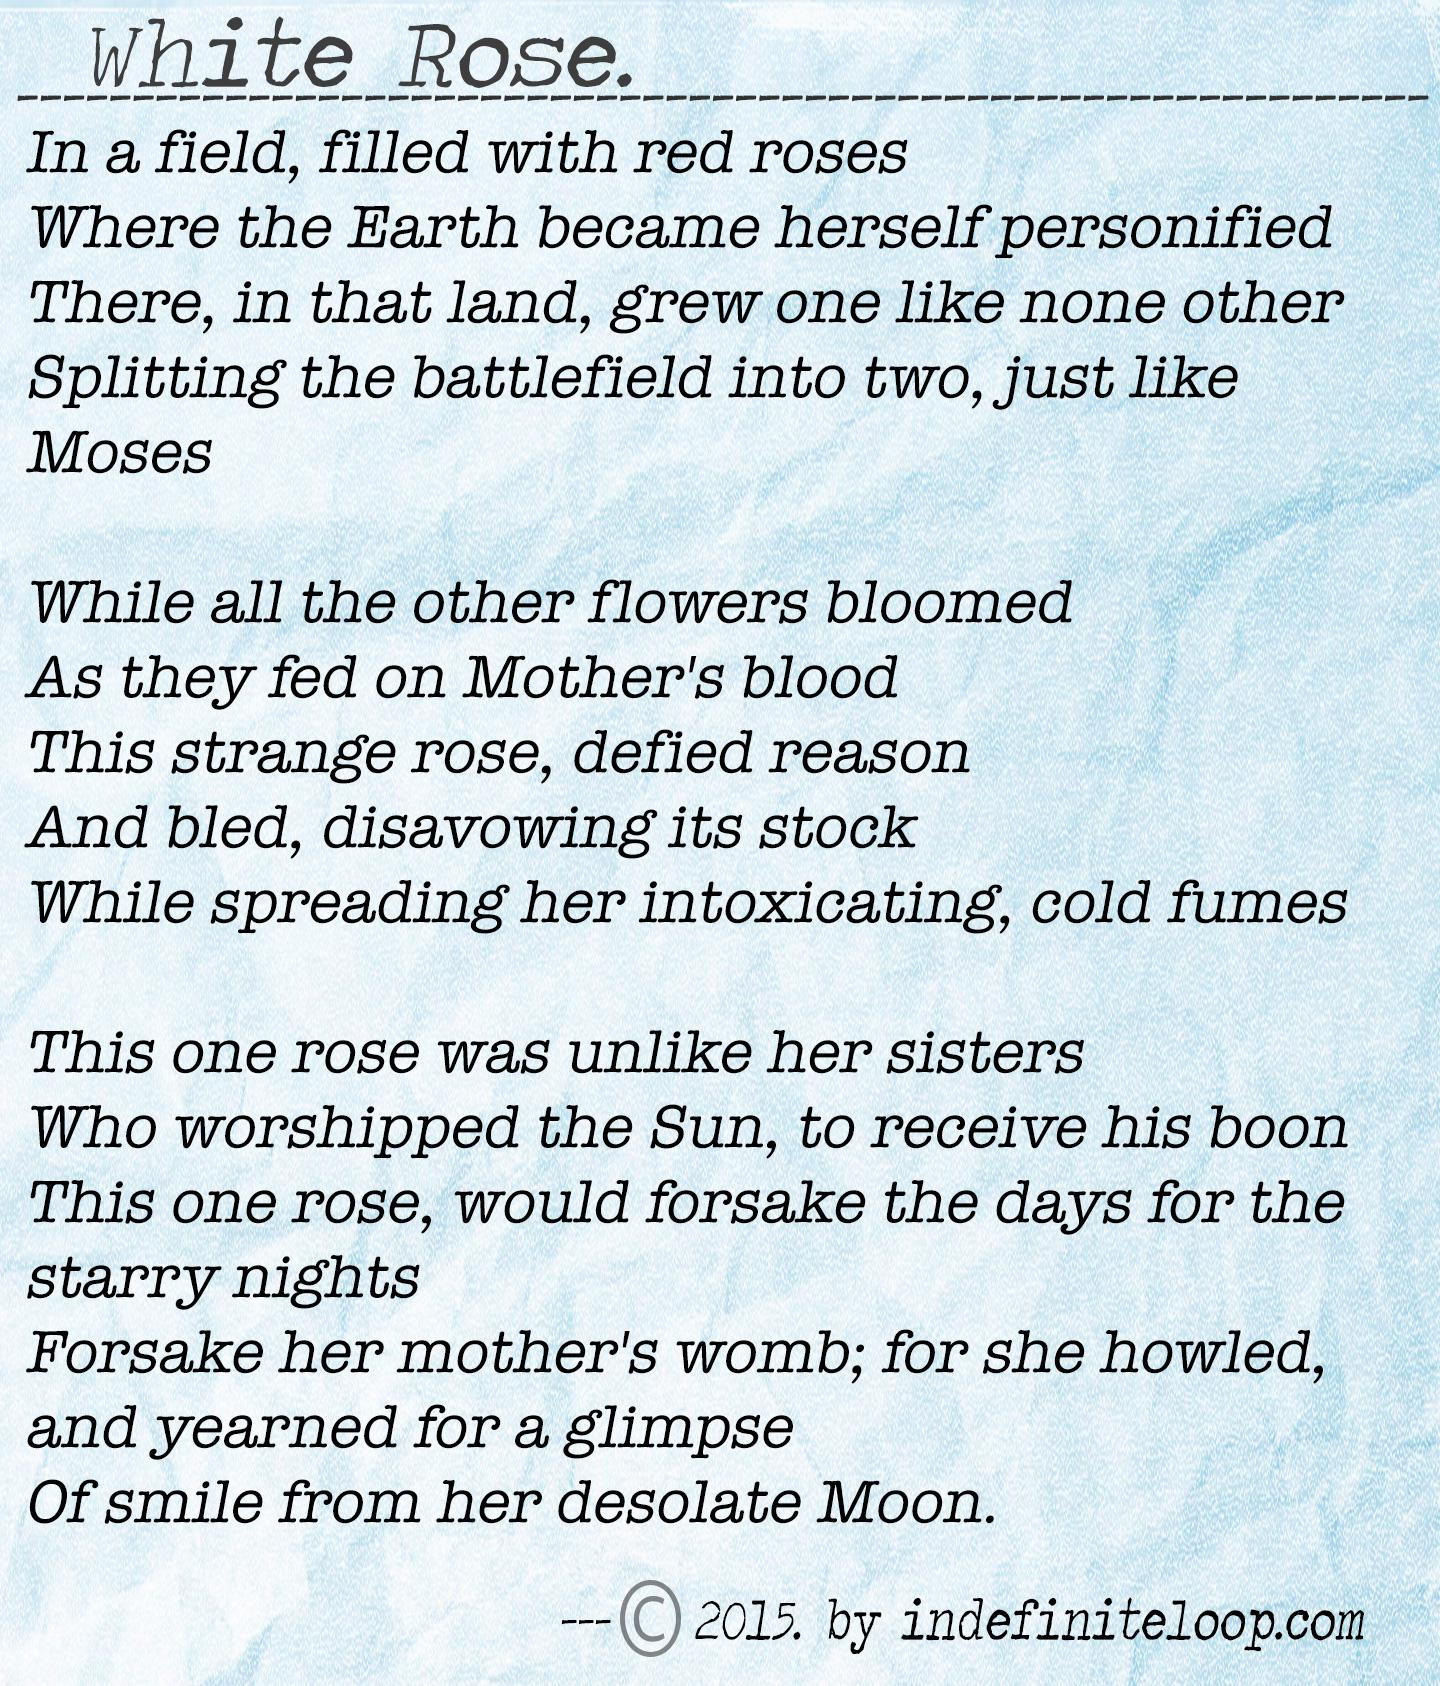 White Rose - Poem - Copyright indefiniteloop.com